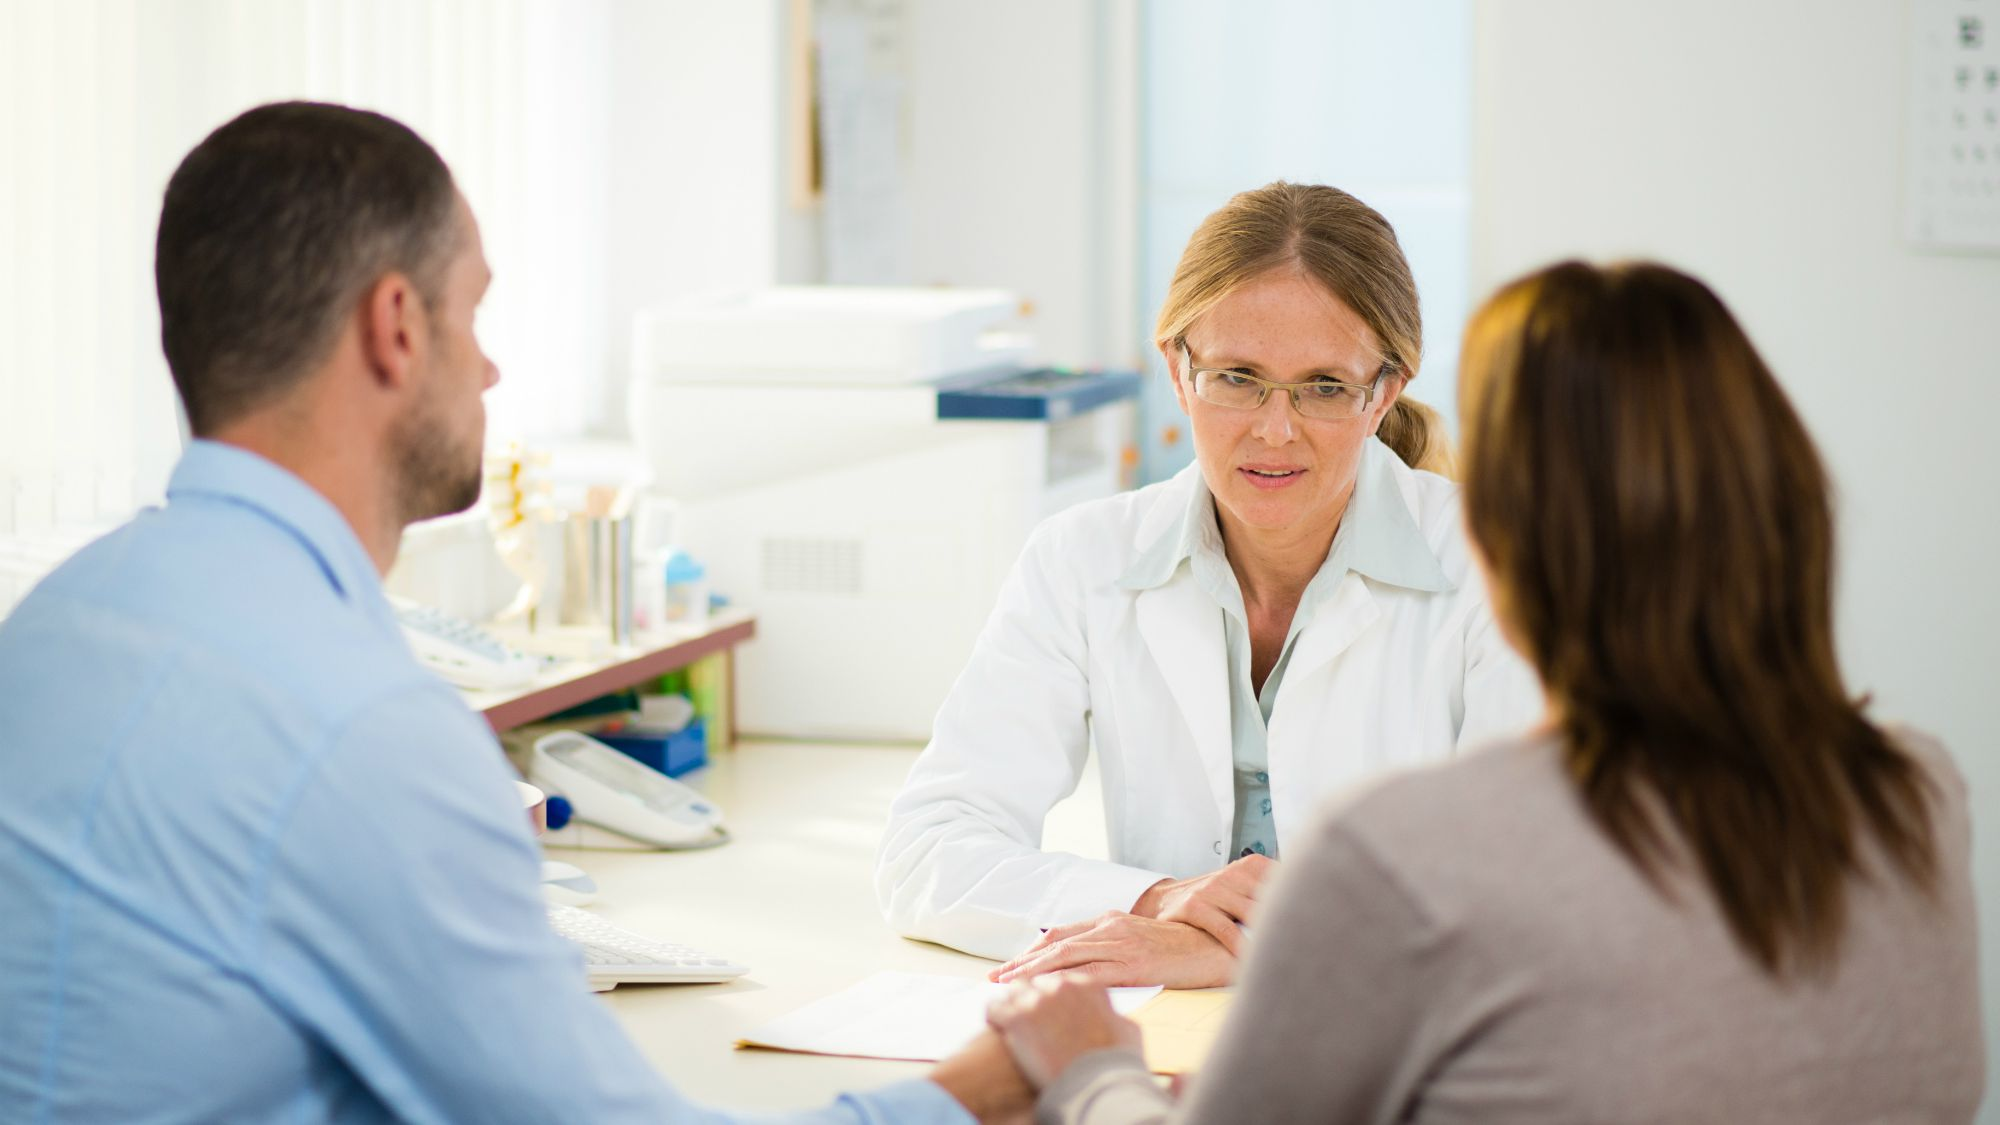 Supporting a Partner With Polycystic Ovary Syndrome